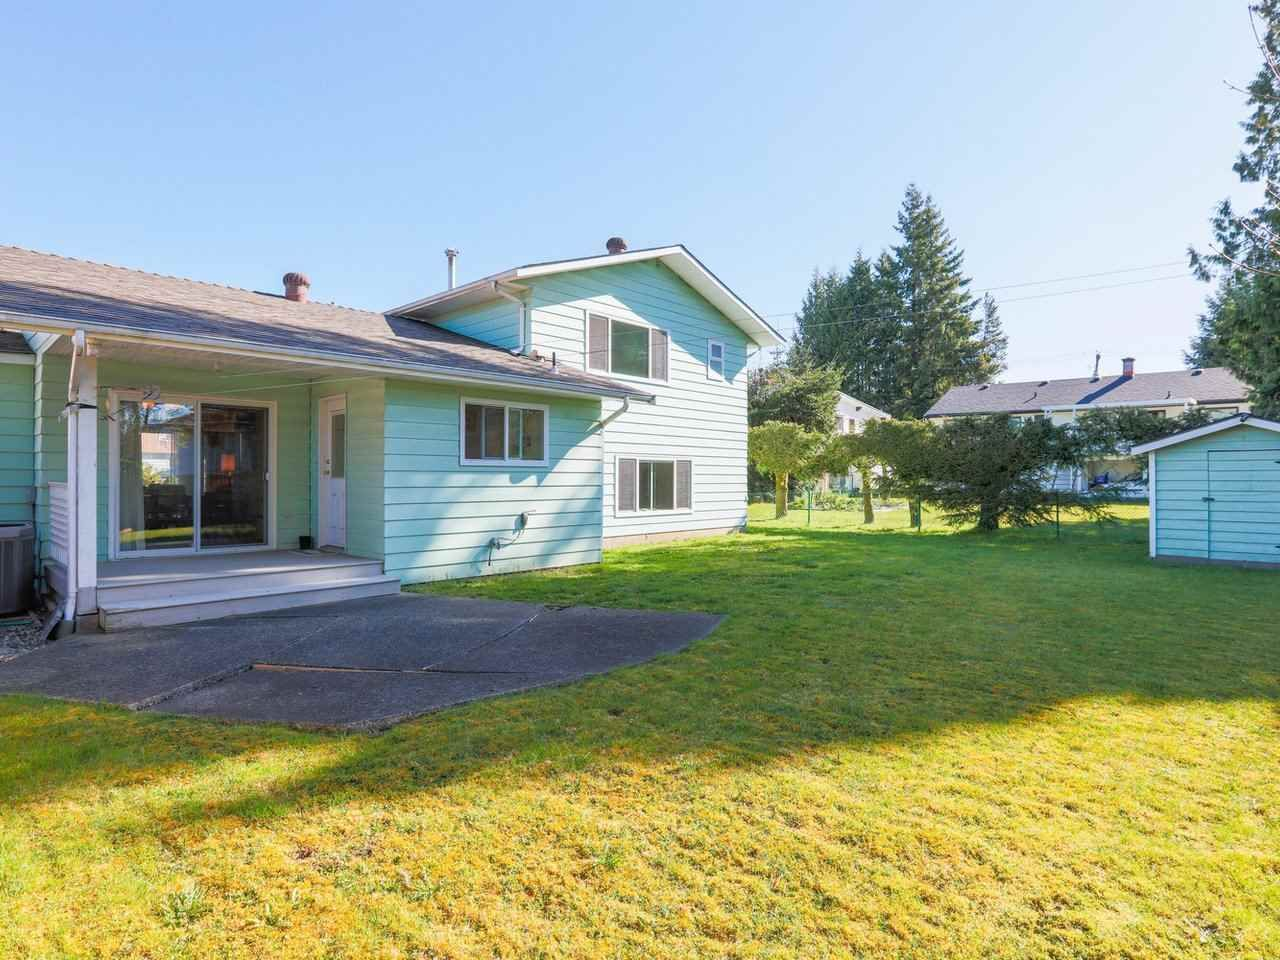 Photo 23: Photos: 1422 GROVER Avenue in Coquitlam: Central Coquitlam House for sale : MLS®# R2568207